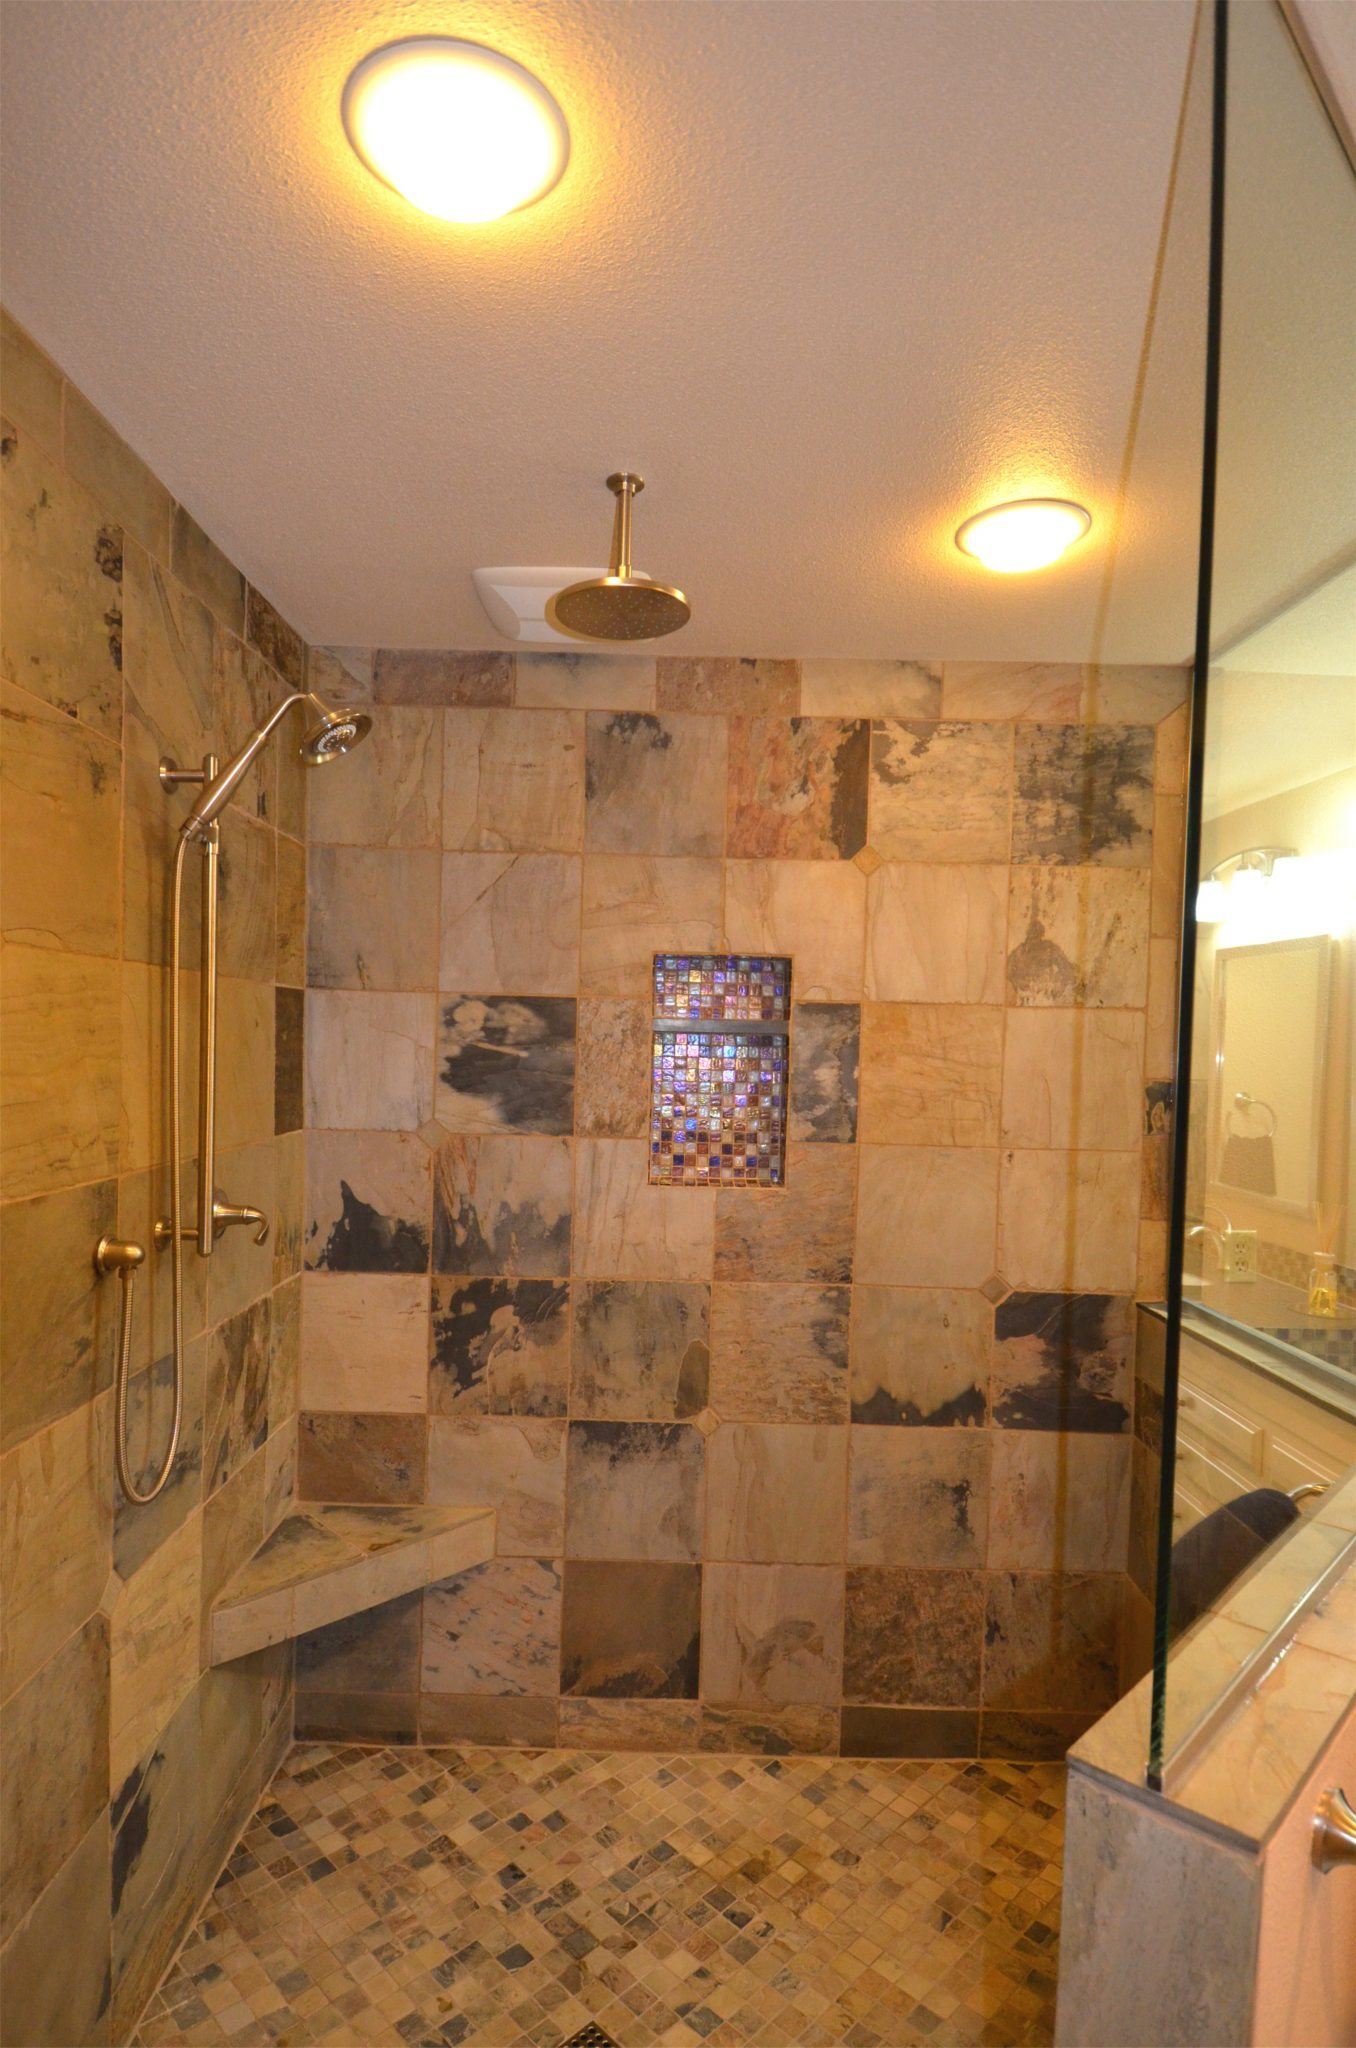 Bathroom Tile Ideas On A Budget Walk In Shower With Rain Head Dale S Remodeling Salem Oregon